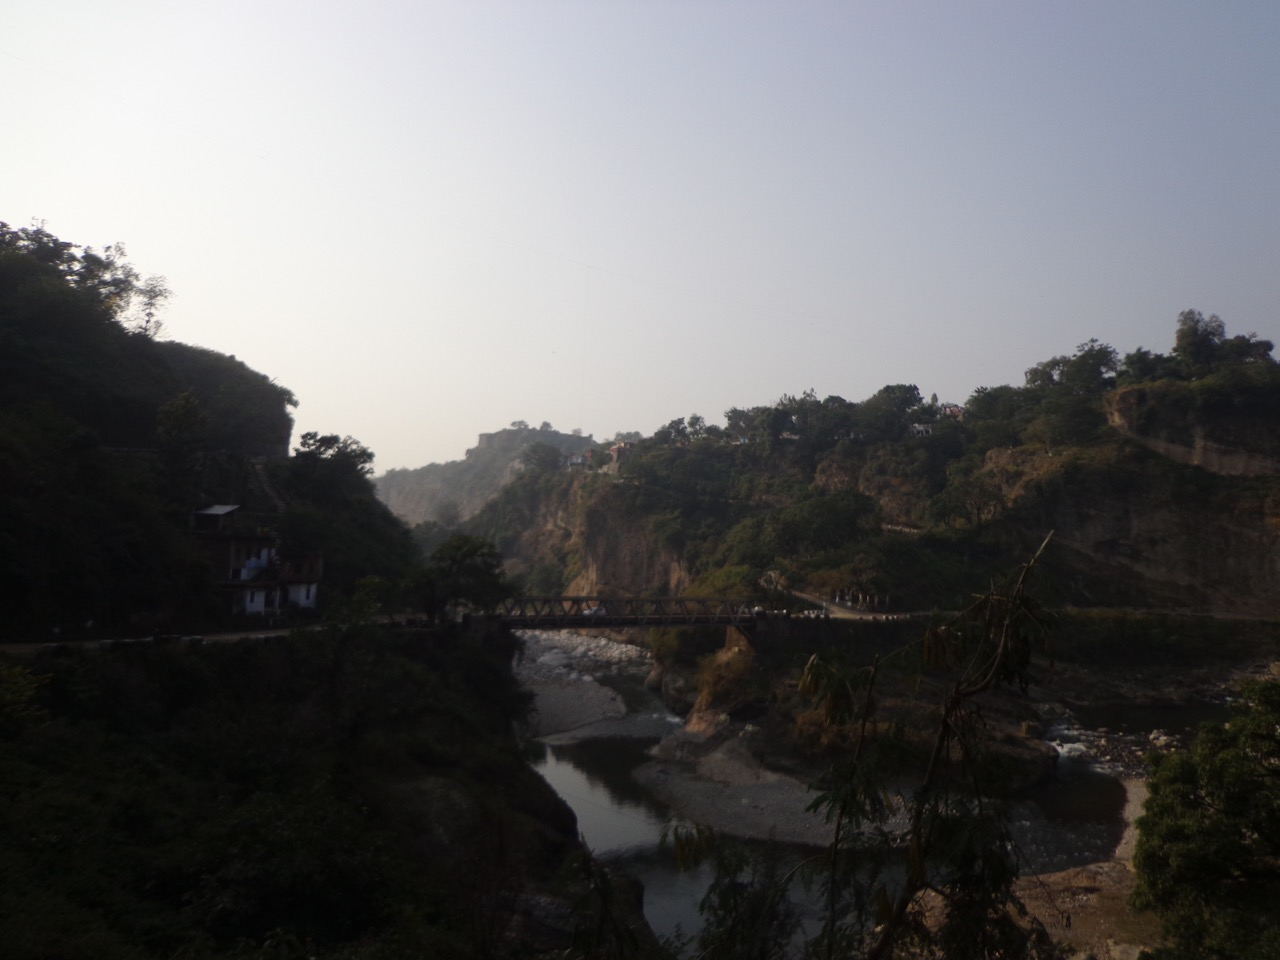 The fort on the hilltop is visible from Baner Khad.